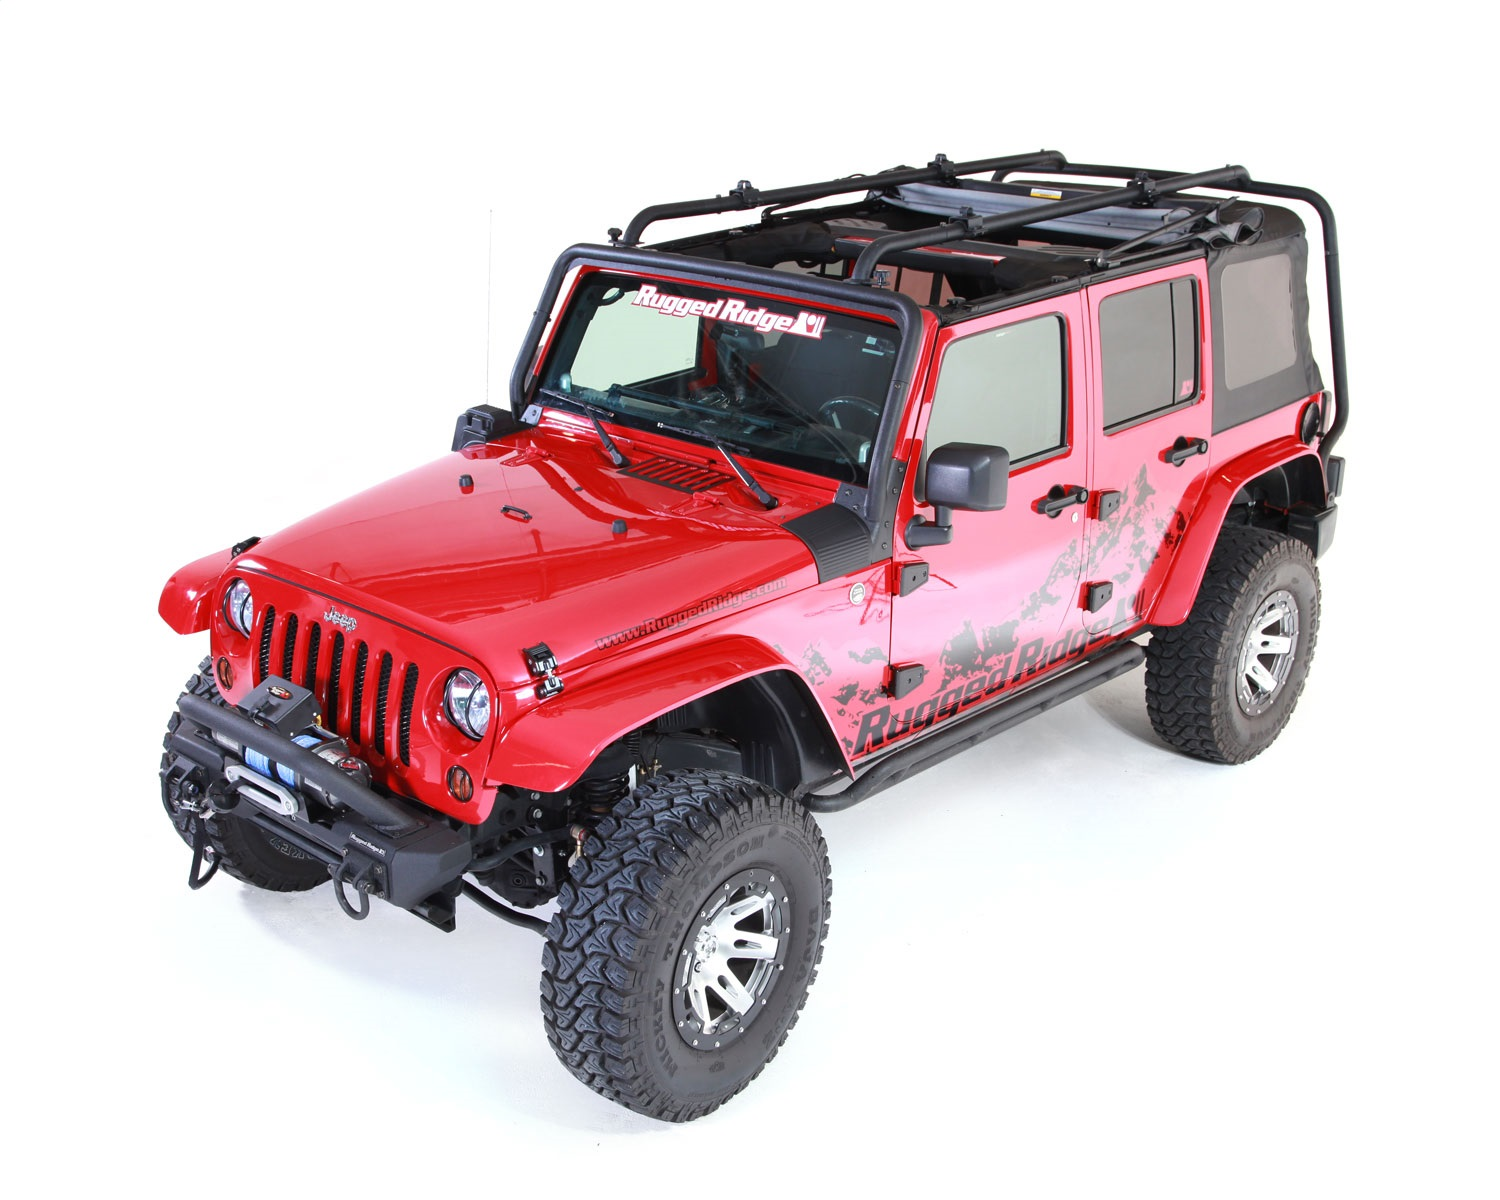 Rugged-Ridge-11703-02-Sherpa-Roof-Rack-Fits-07-18-Wrangler-JK